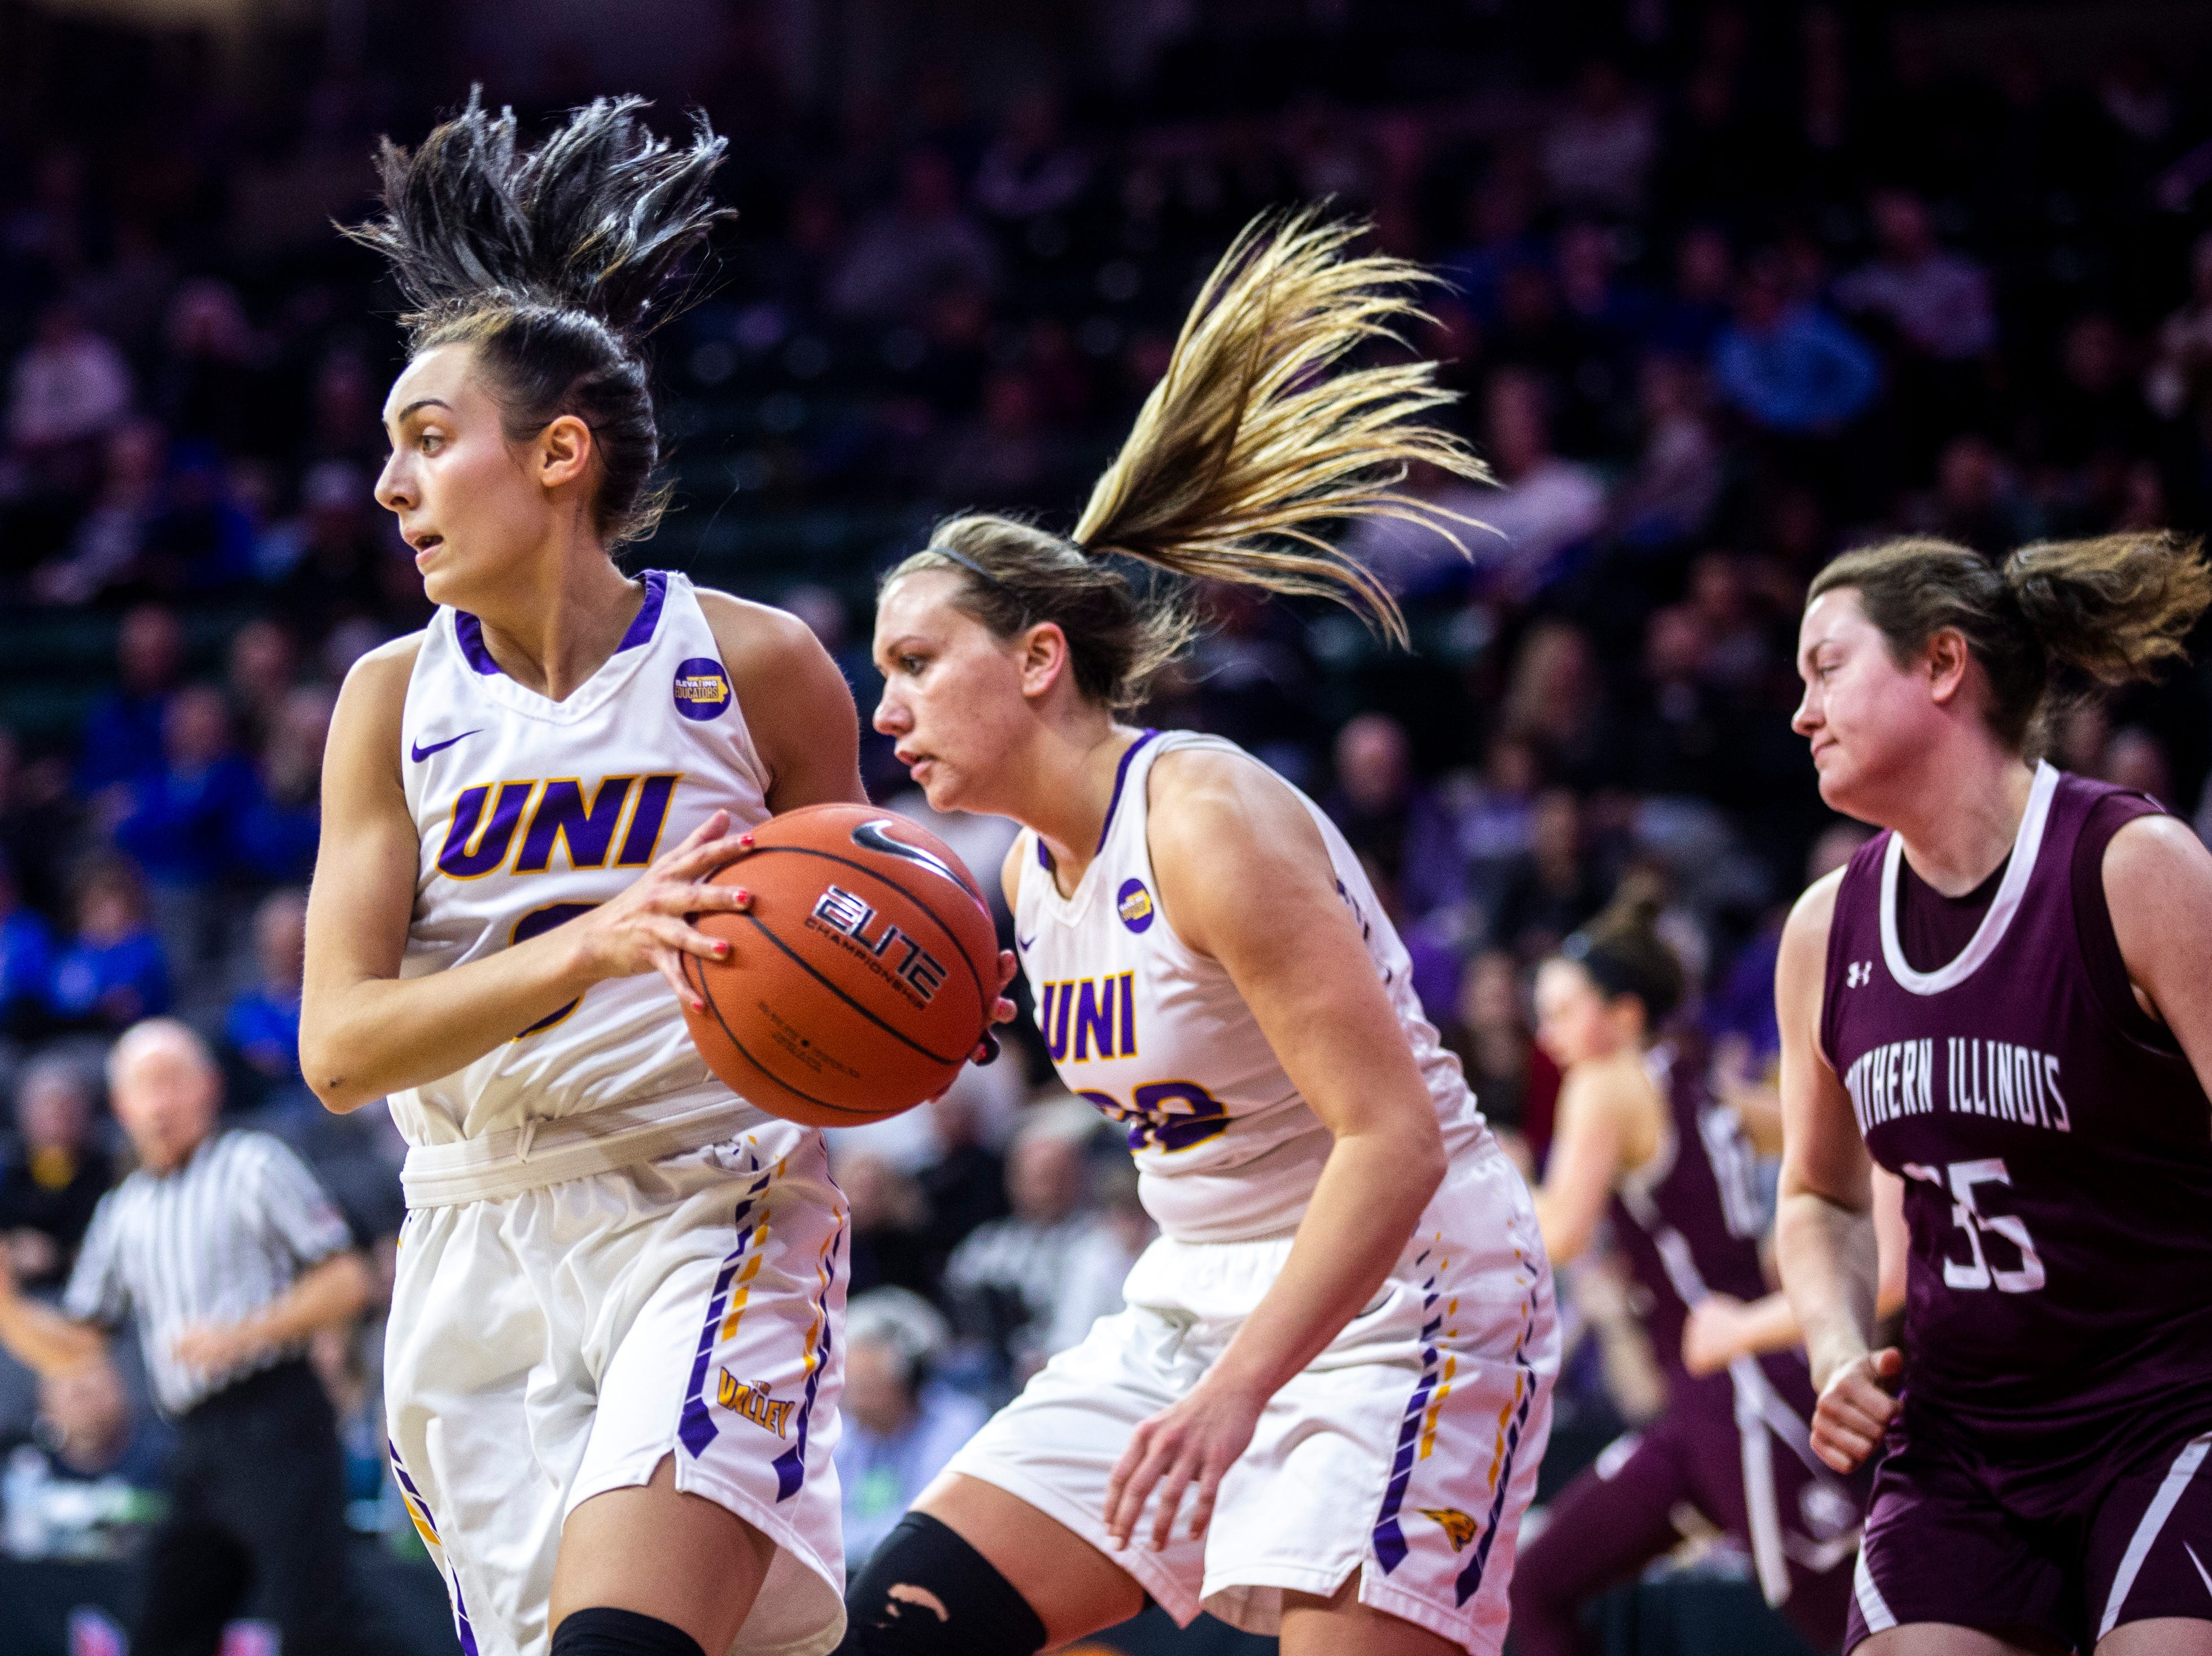 Northern Iowa guard Karli Rucker (3) pulls down a rebound during a NCAA Missouri Valley Conference women's basketball quarterfinal tournament game, Friday, March 15, 2019, at the TaxSlayer Center in Moline, Illinois.